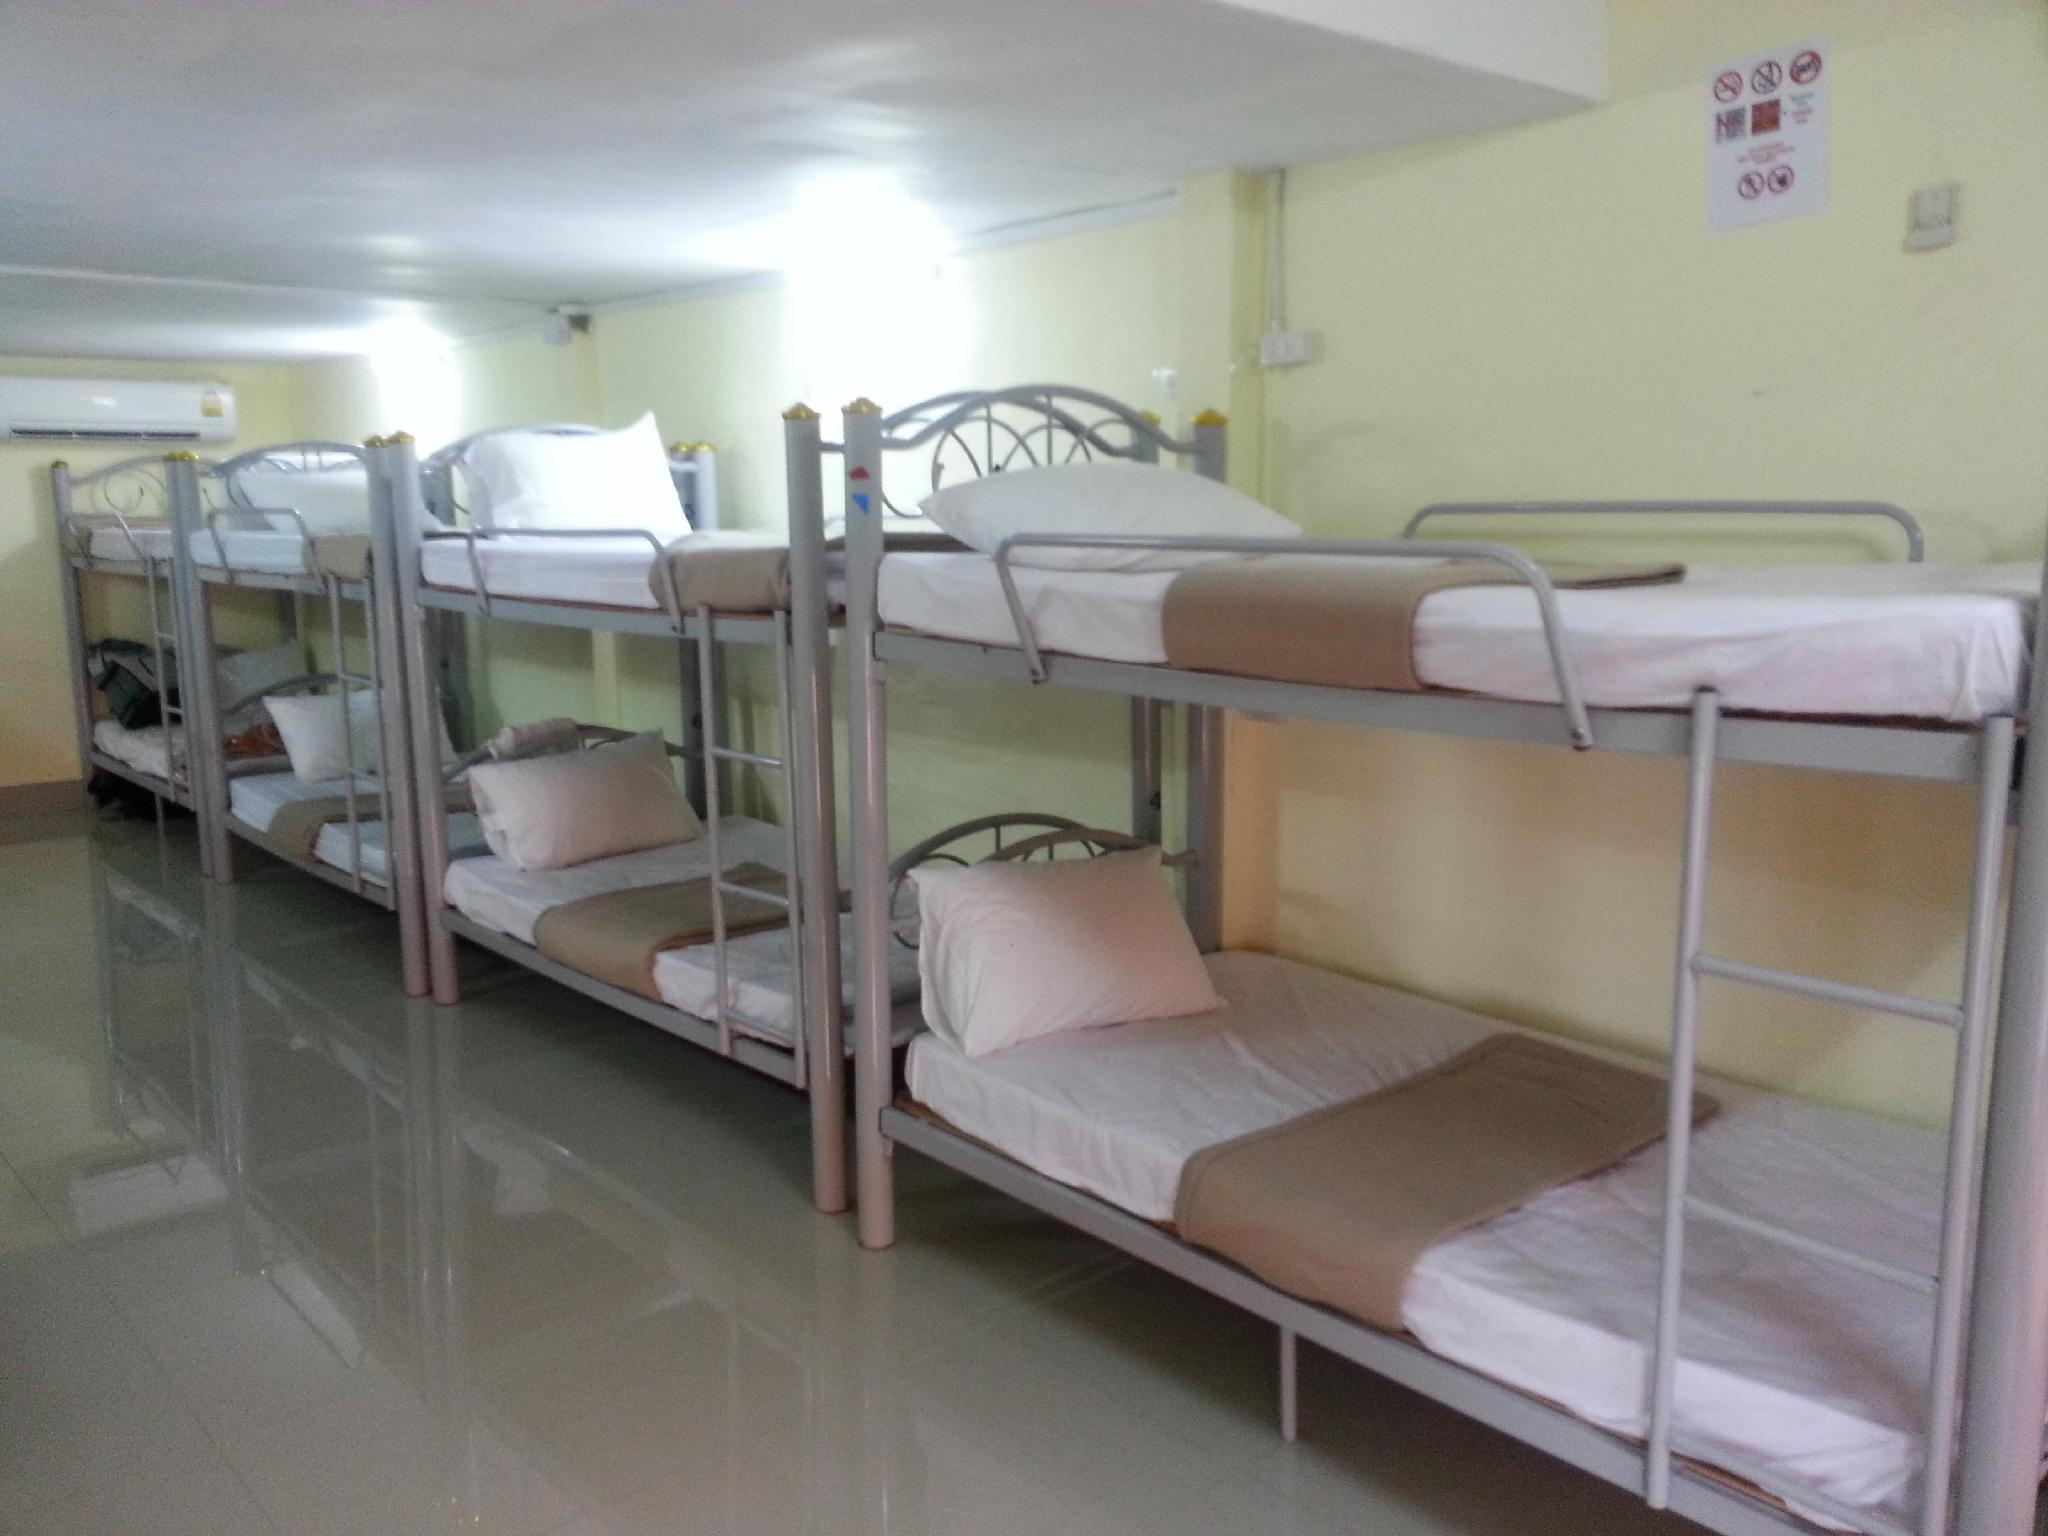 1 Bed in 8-Bed Dormitory